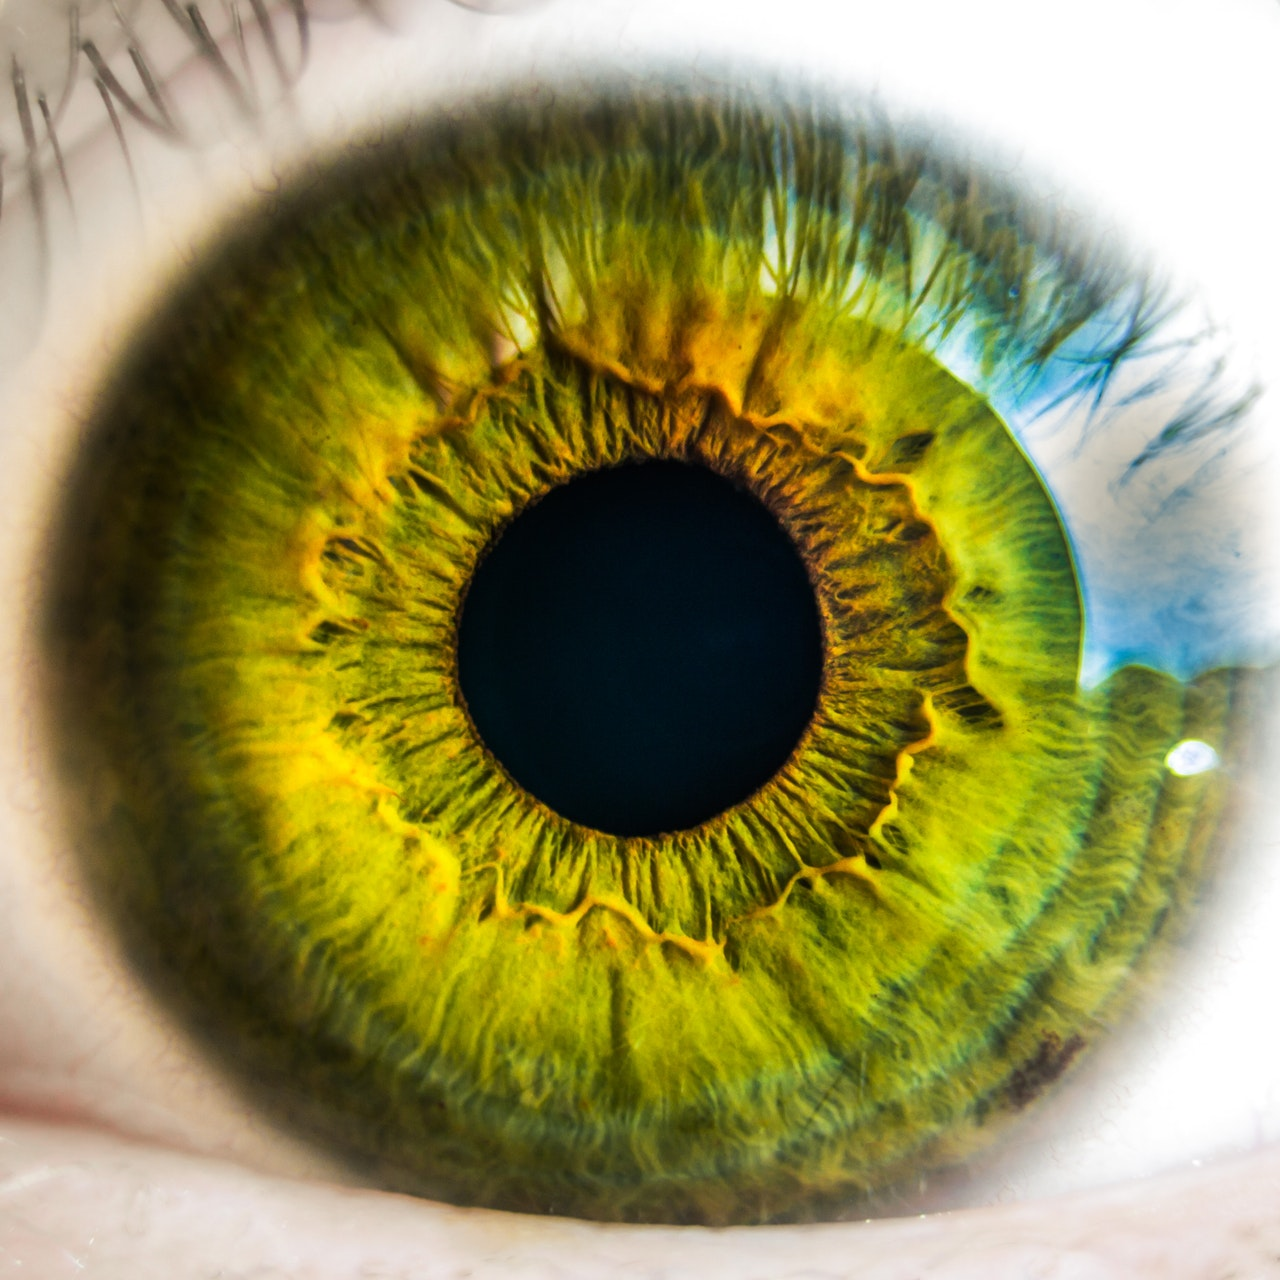 Using the eye as a window to the brain - Learn more about Dr. Tiba's ocular bioimpedance research.